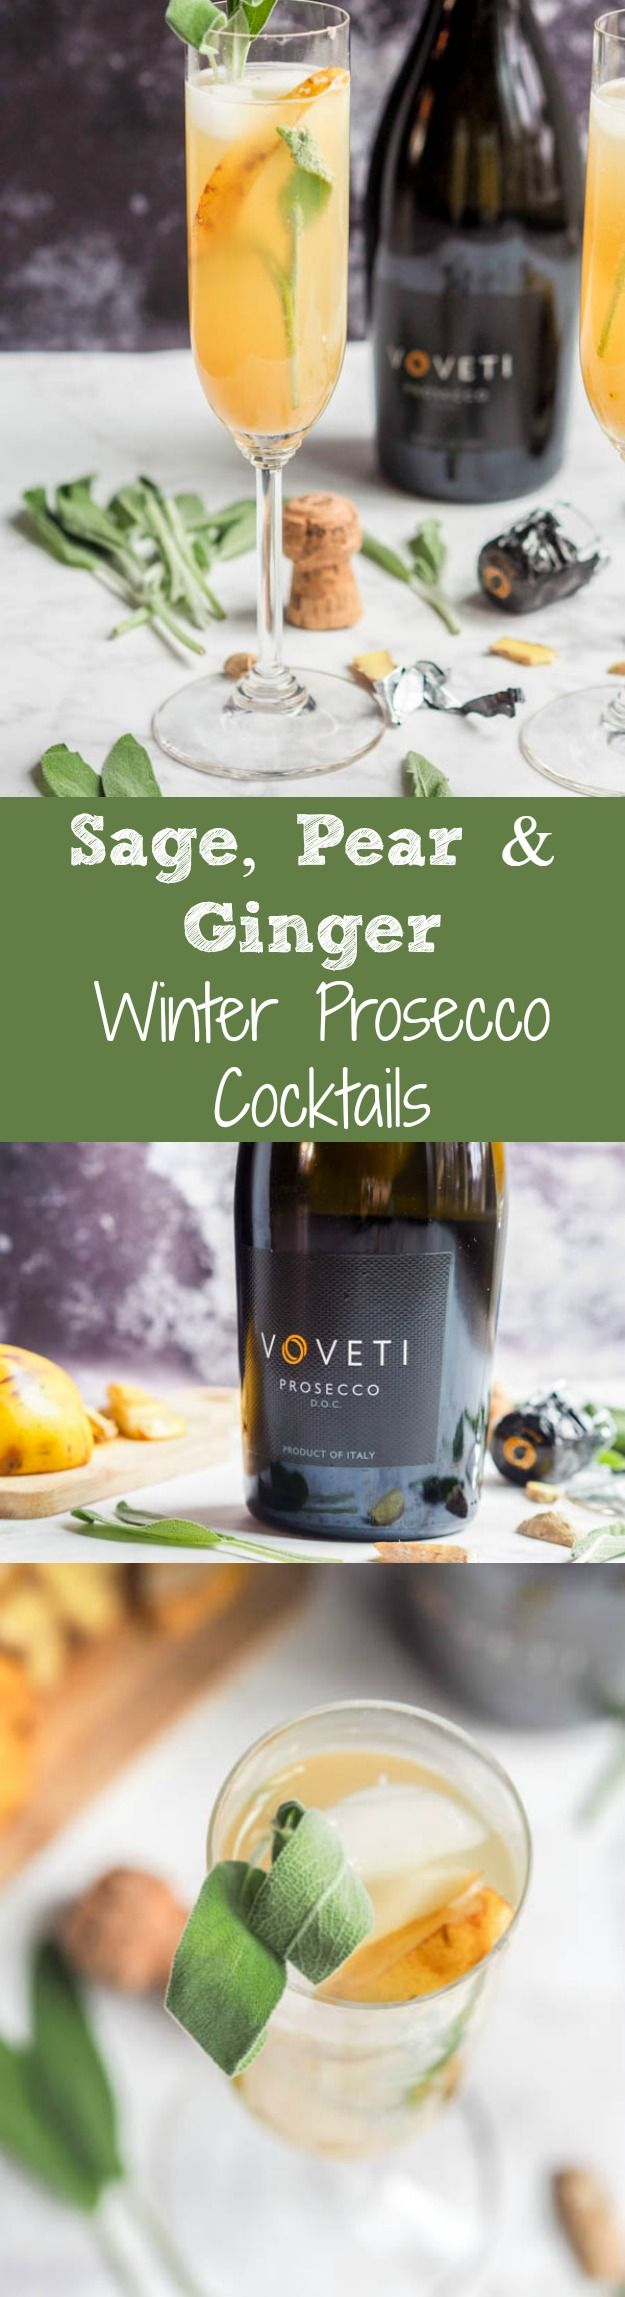 These winter prosecco cocktails are made with sage, pear and ginger for a super chic and fragrant yet easy to make winter themed adult beverage. Perfect for holiday entertaining and celebrating!